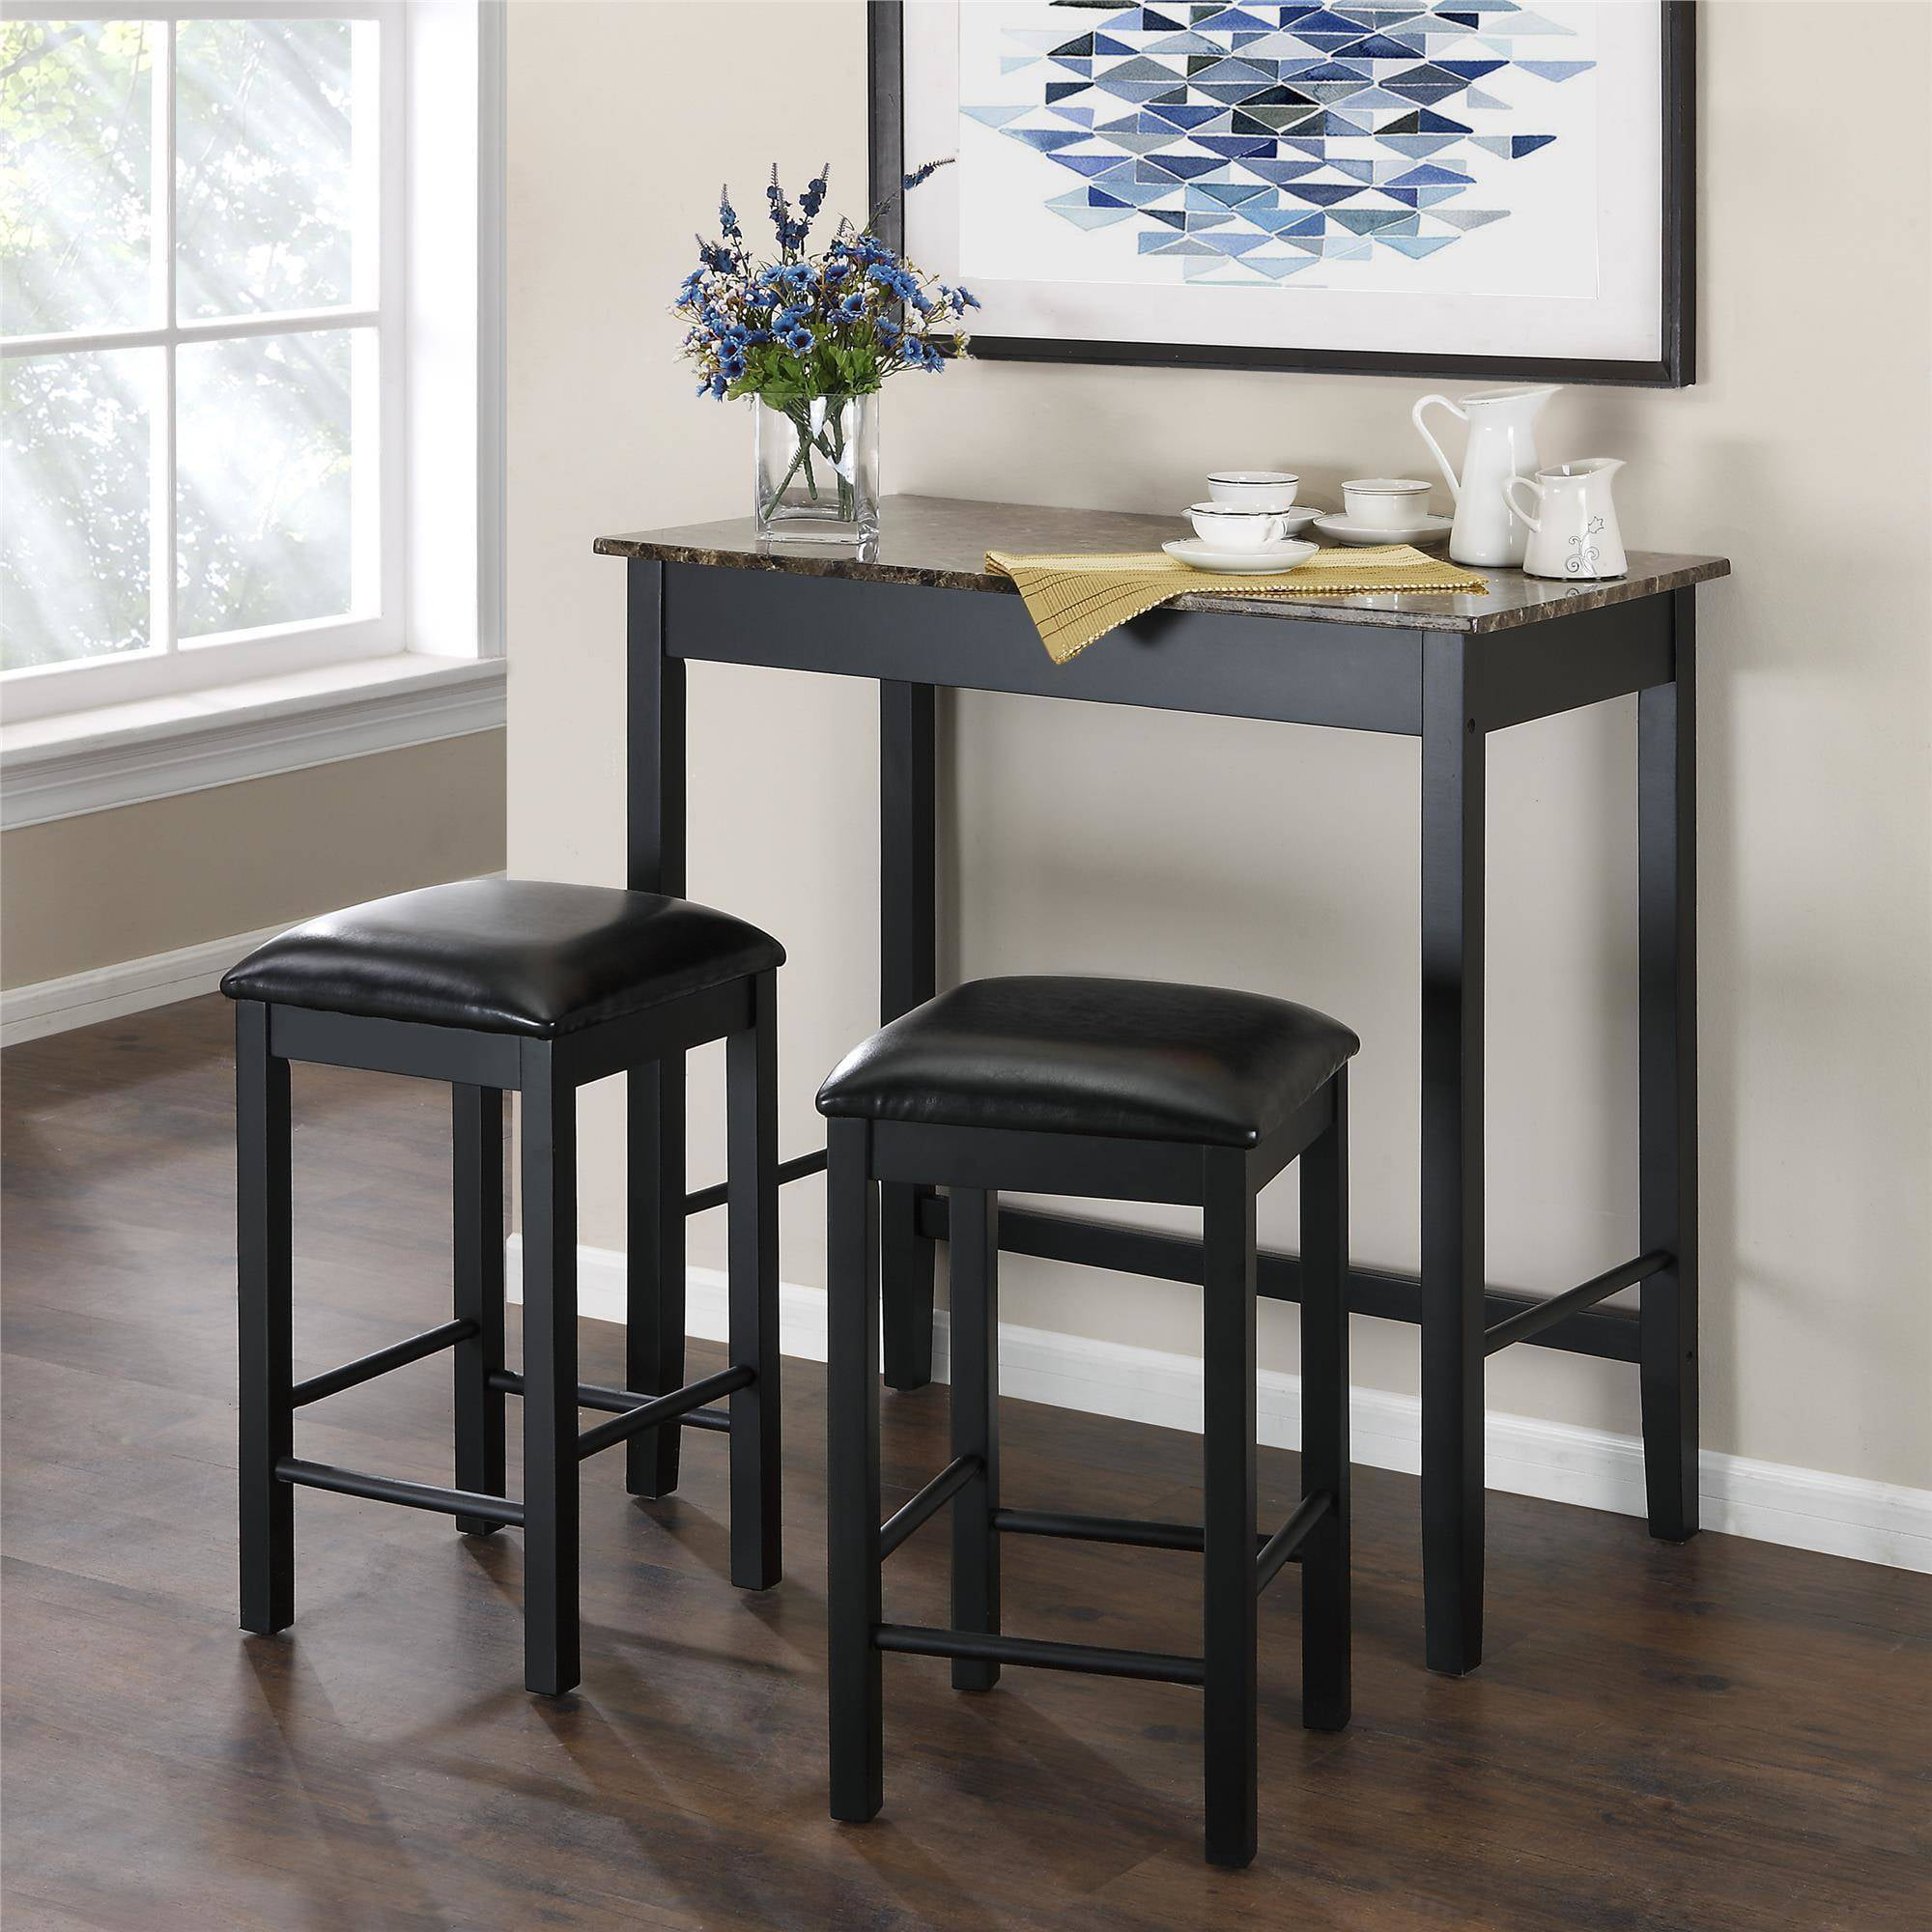 Kitchen & Dining Furniture Walmart